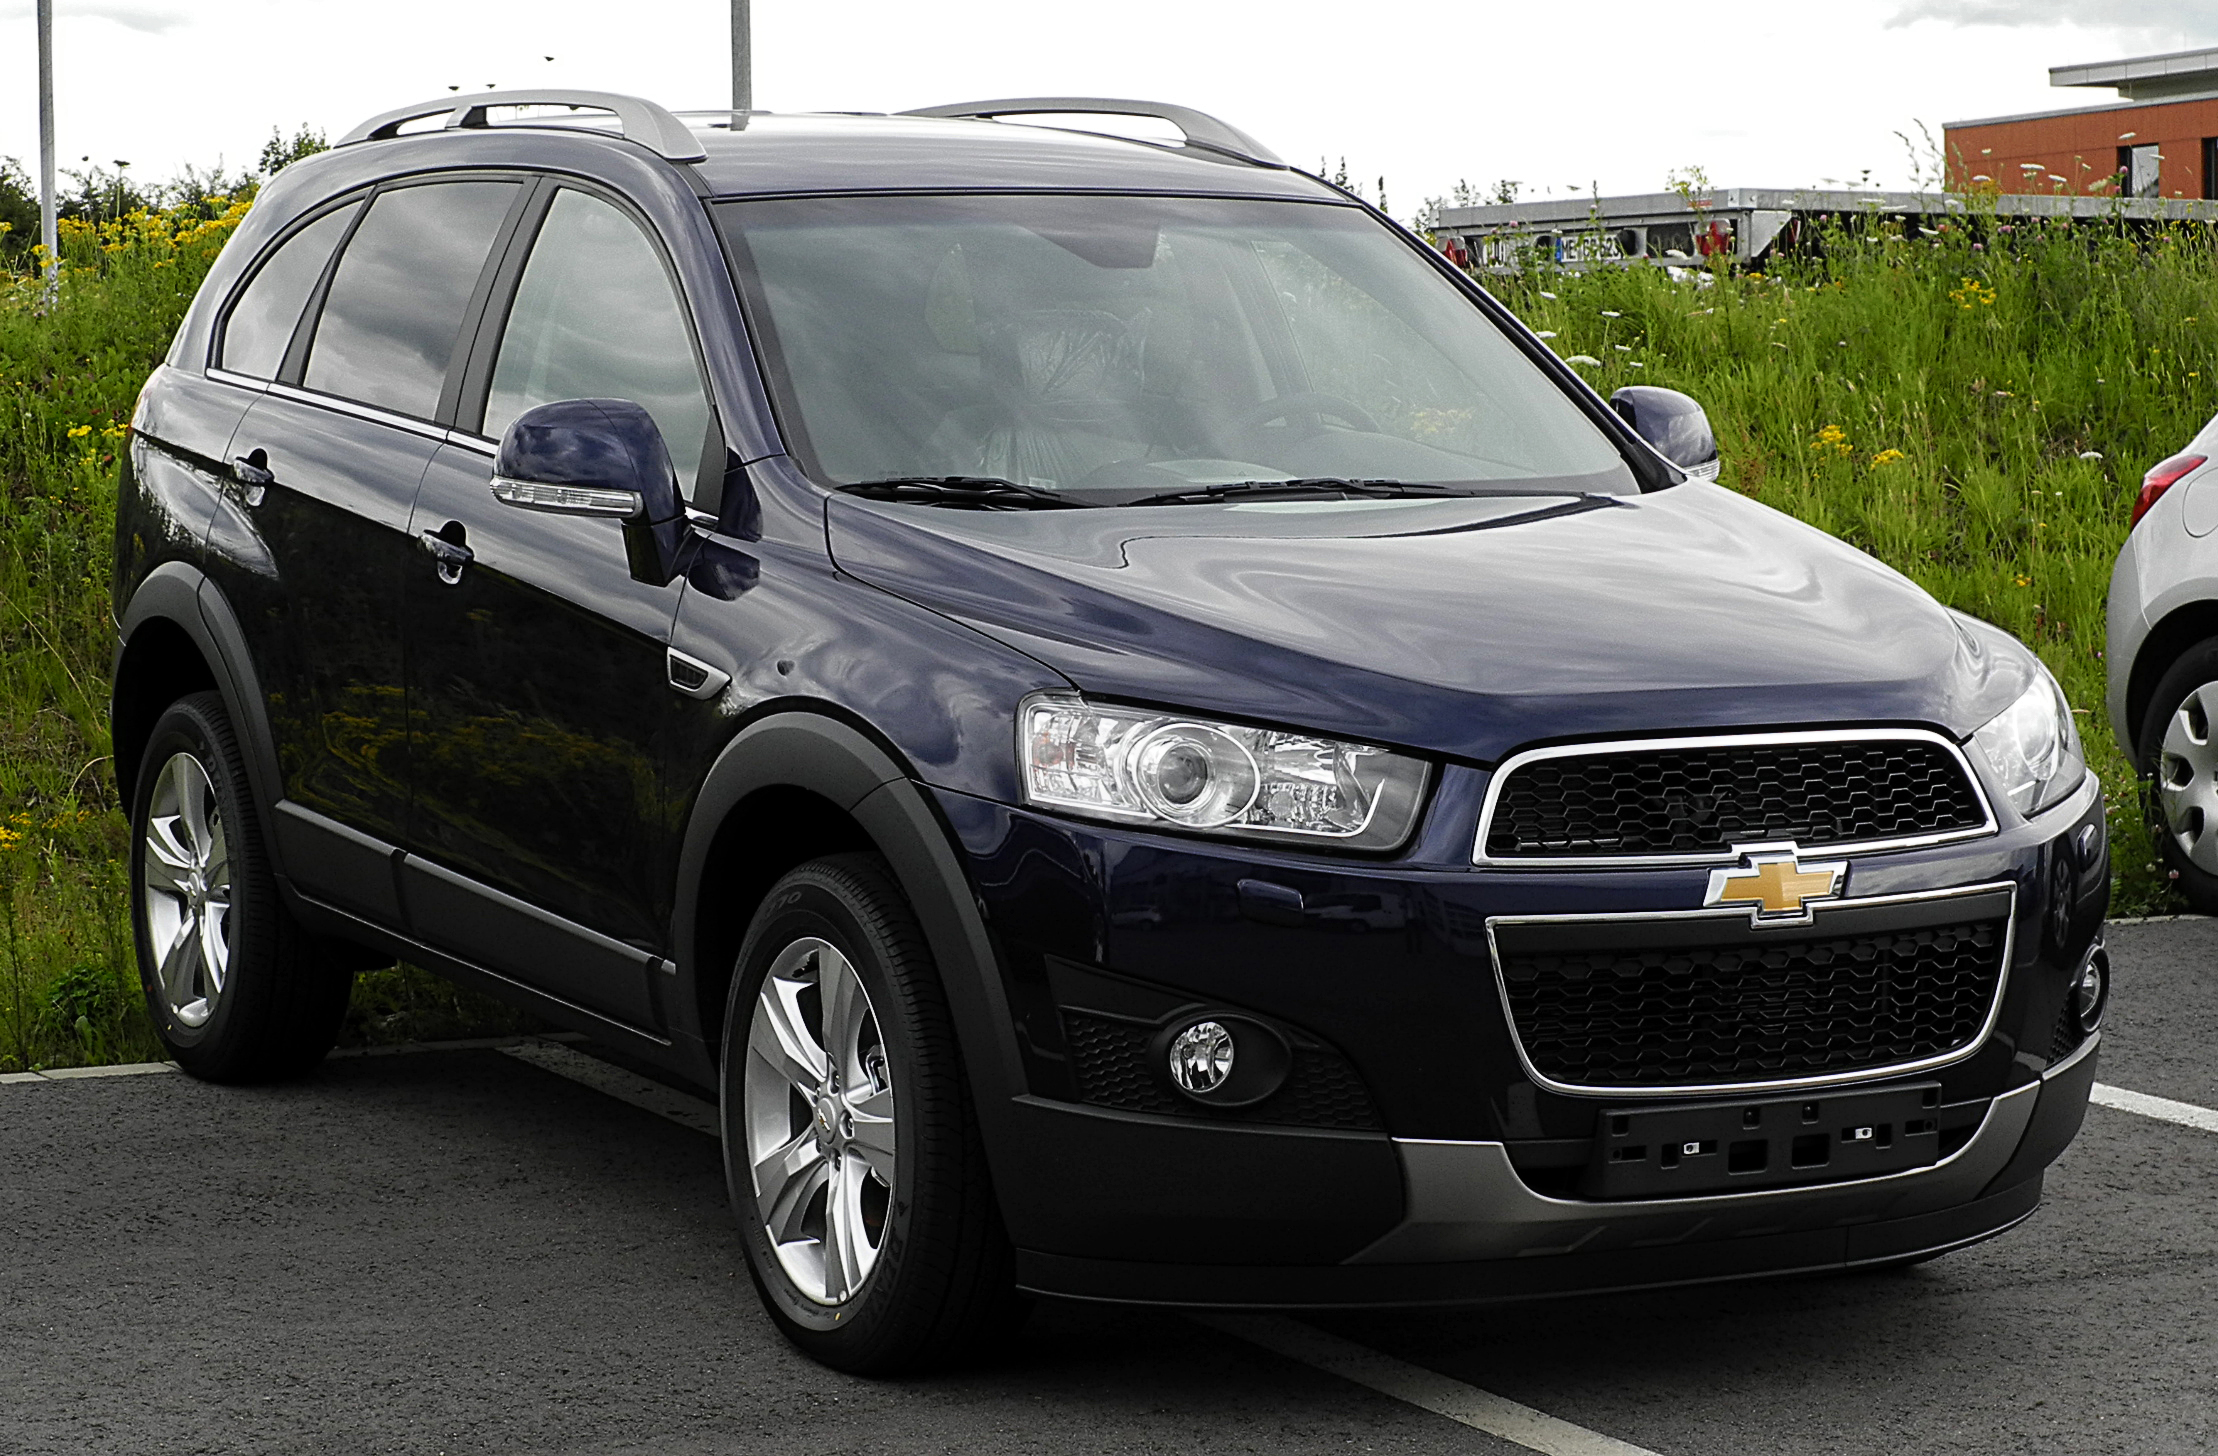 Pictures of chevrolet captiva #10